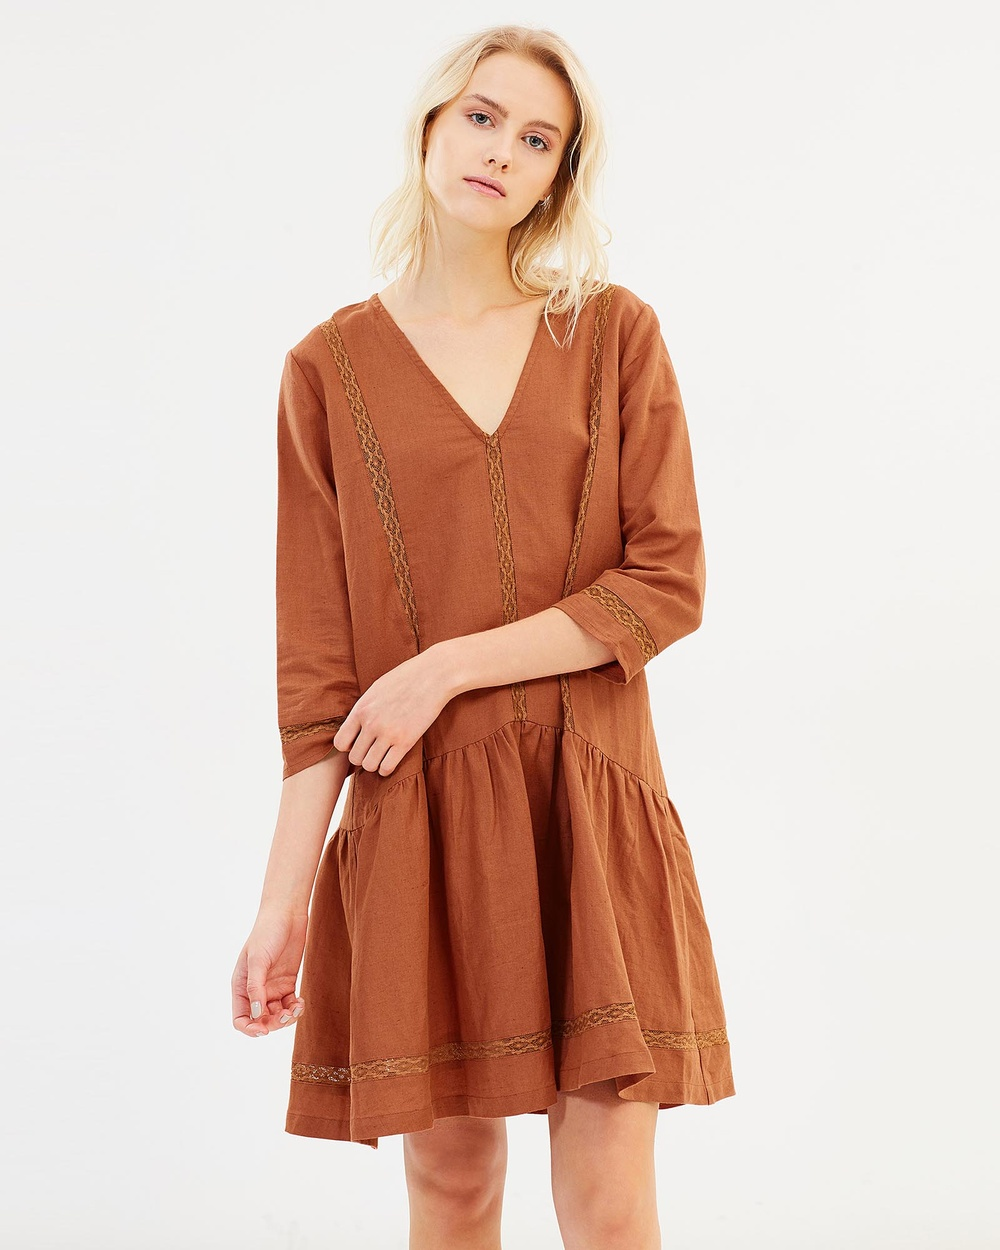 Ryder Emilia Linen Dress Dresses Rust Emilia Linen Dress